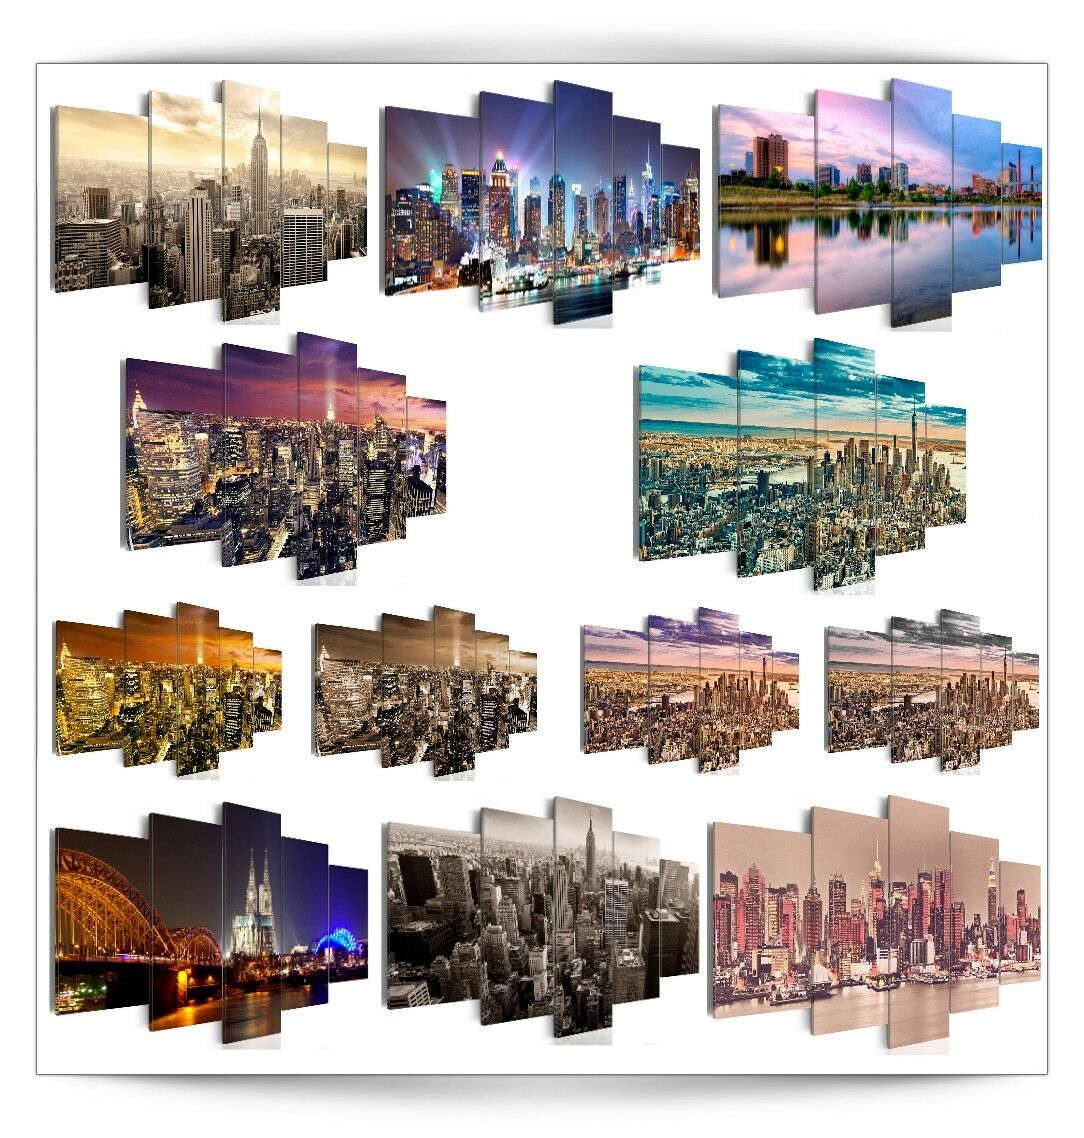 bilder leinwand bild new york stadt panorama wandbilder kunstdruck gro e auswah eur 22 99. Black Bedroom Furniture Sets. Home Design Ideas